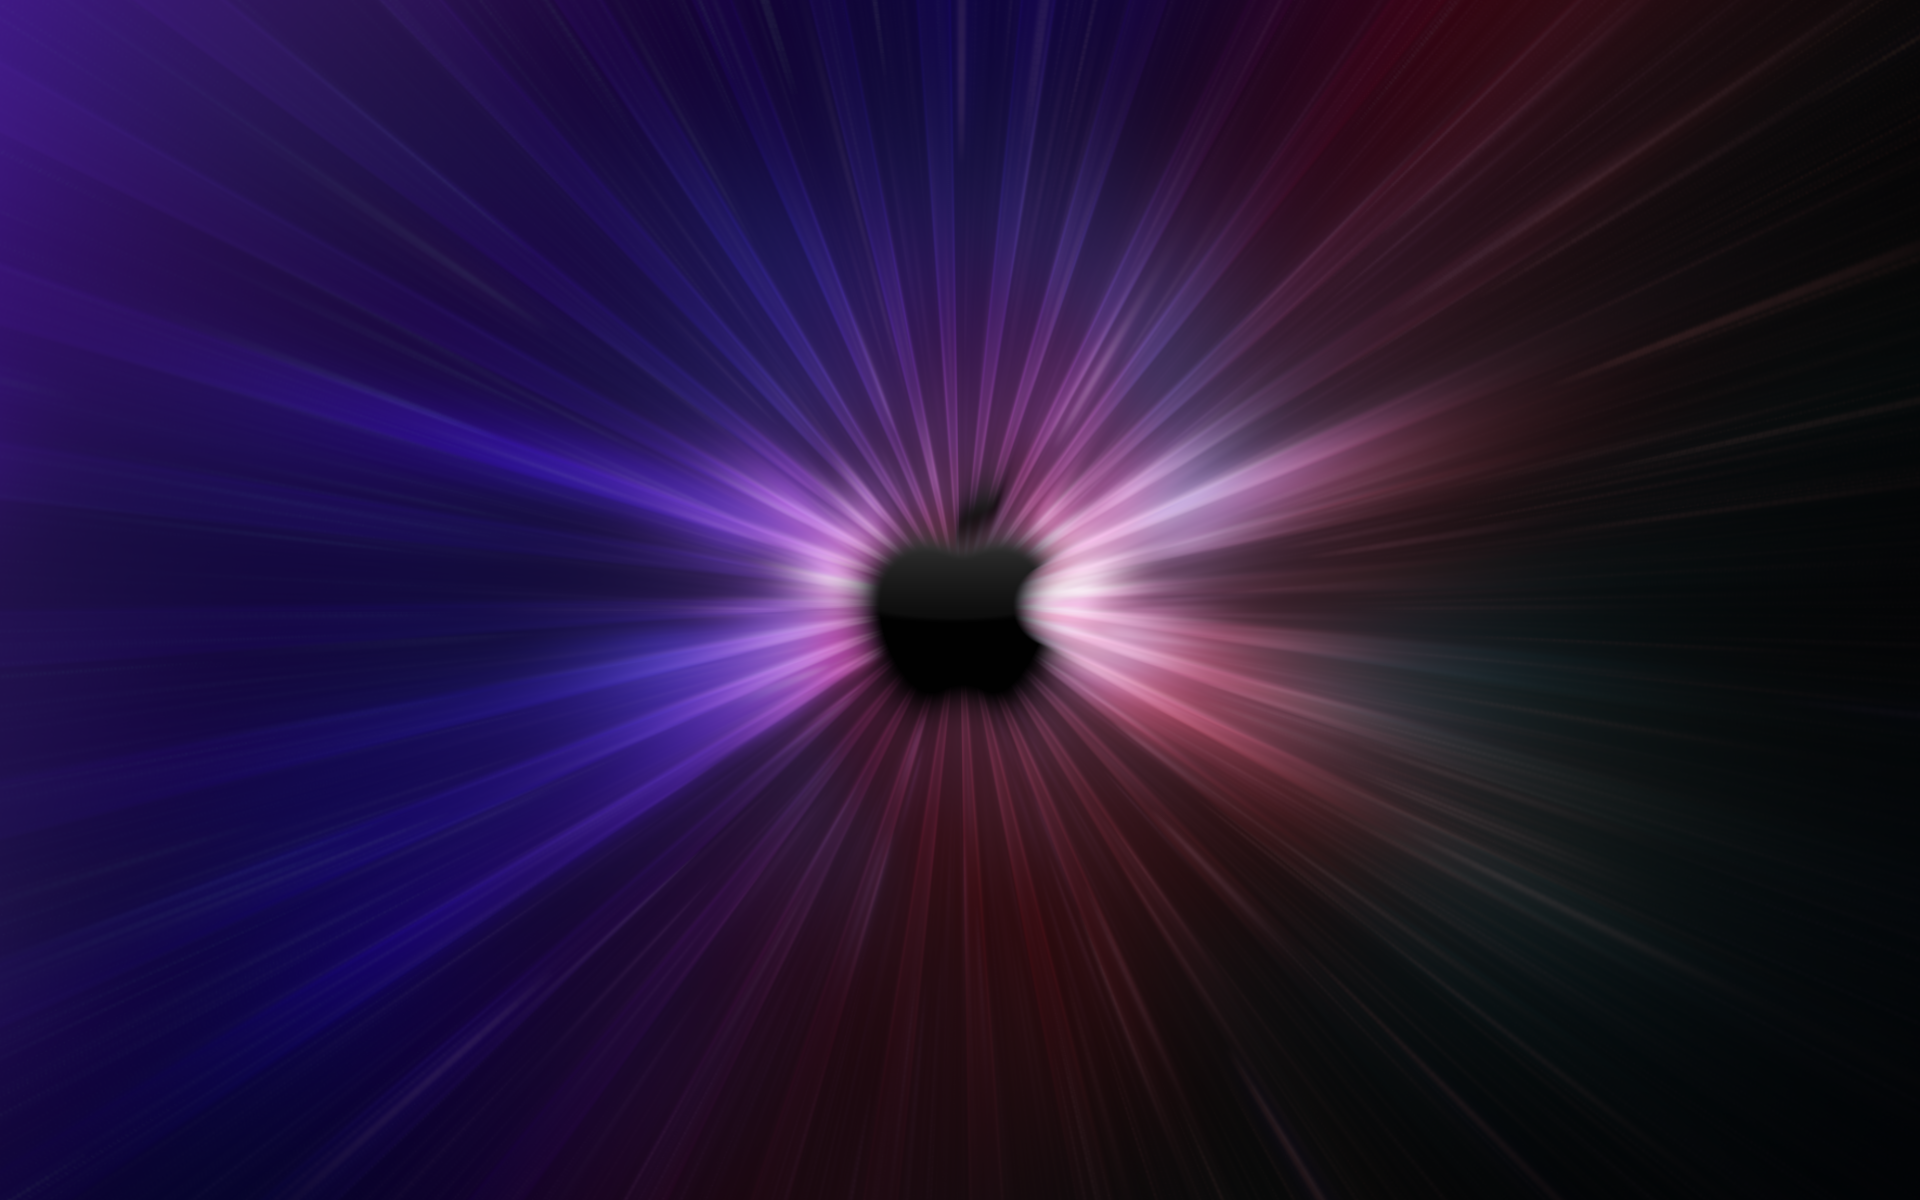 warp 8 Widescreen wallpaper mac